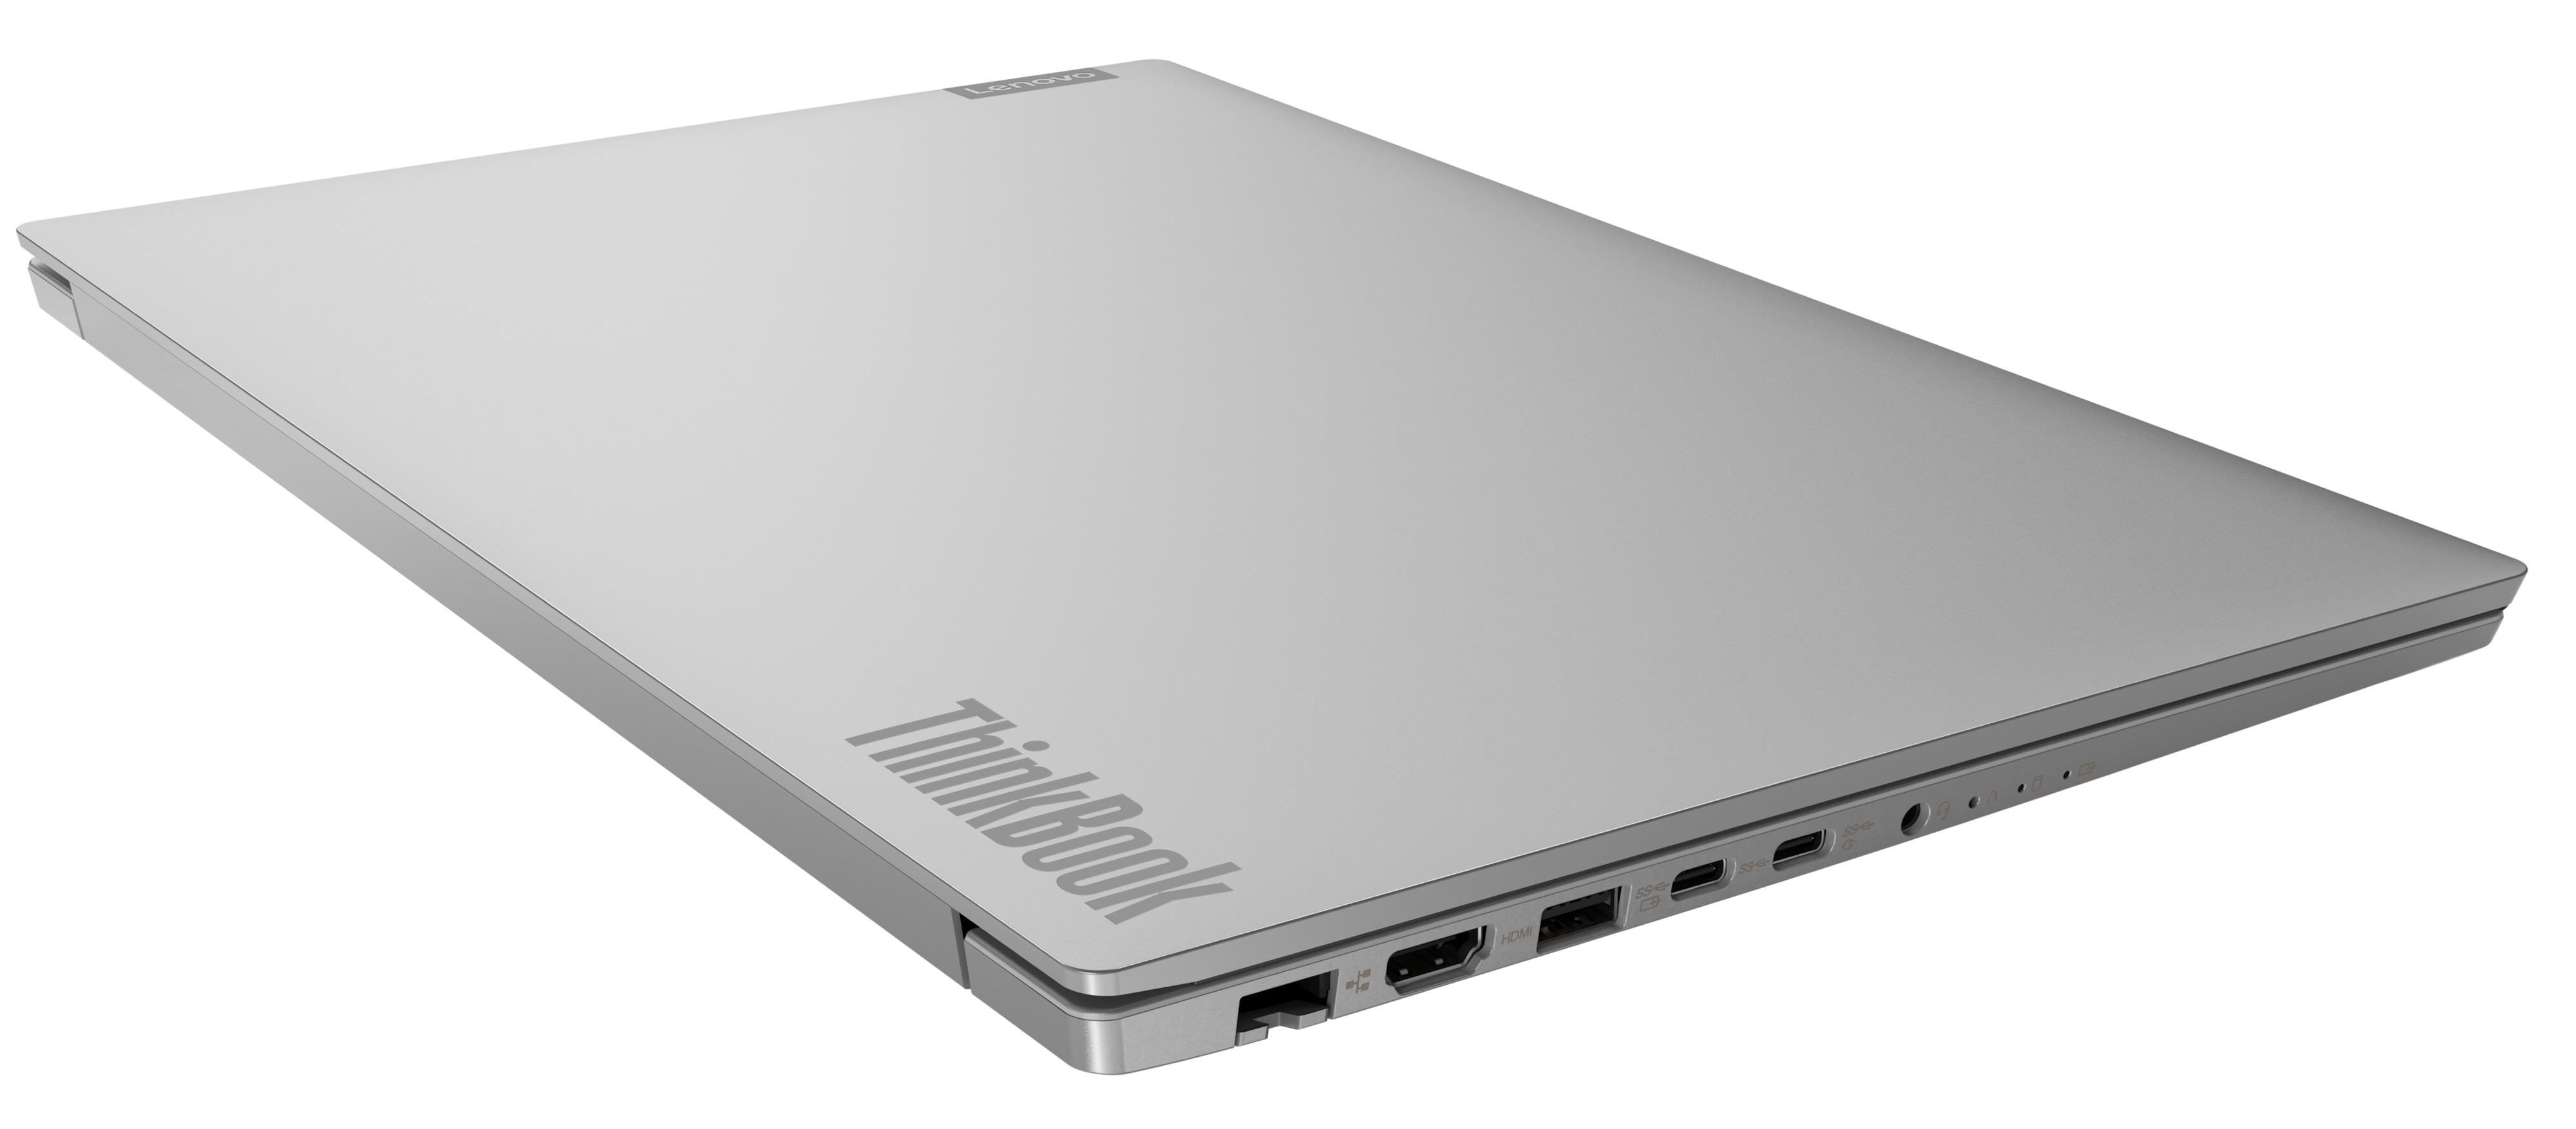 Фото  Ноутбук ThinkBook 15-IIL Mineral Grey (20SM007LRU)